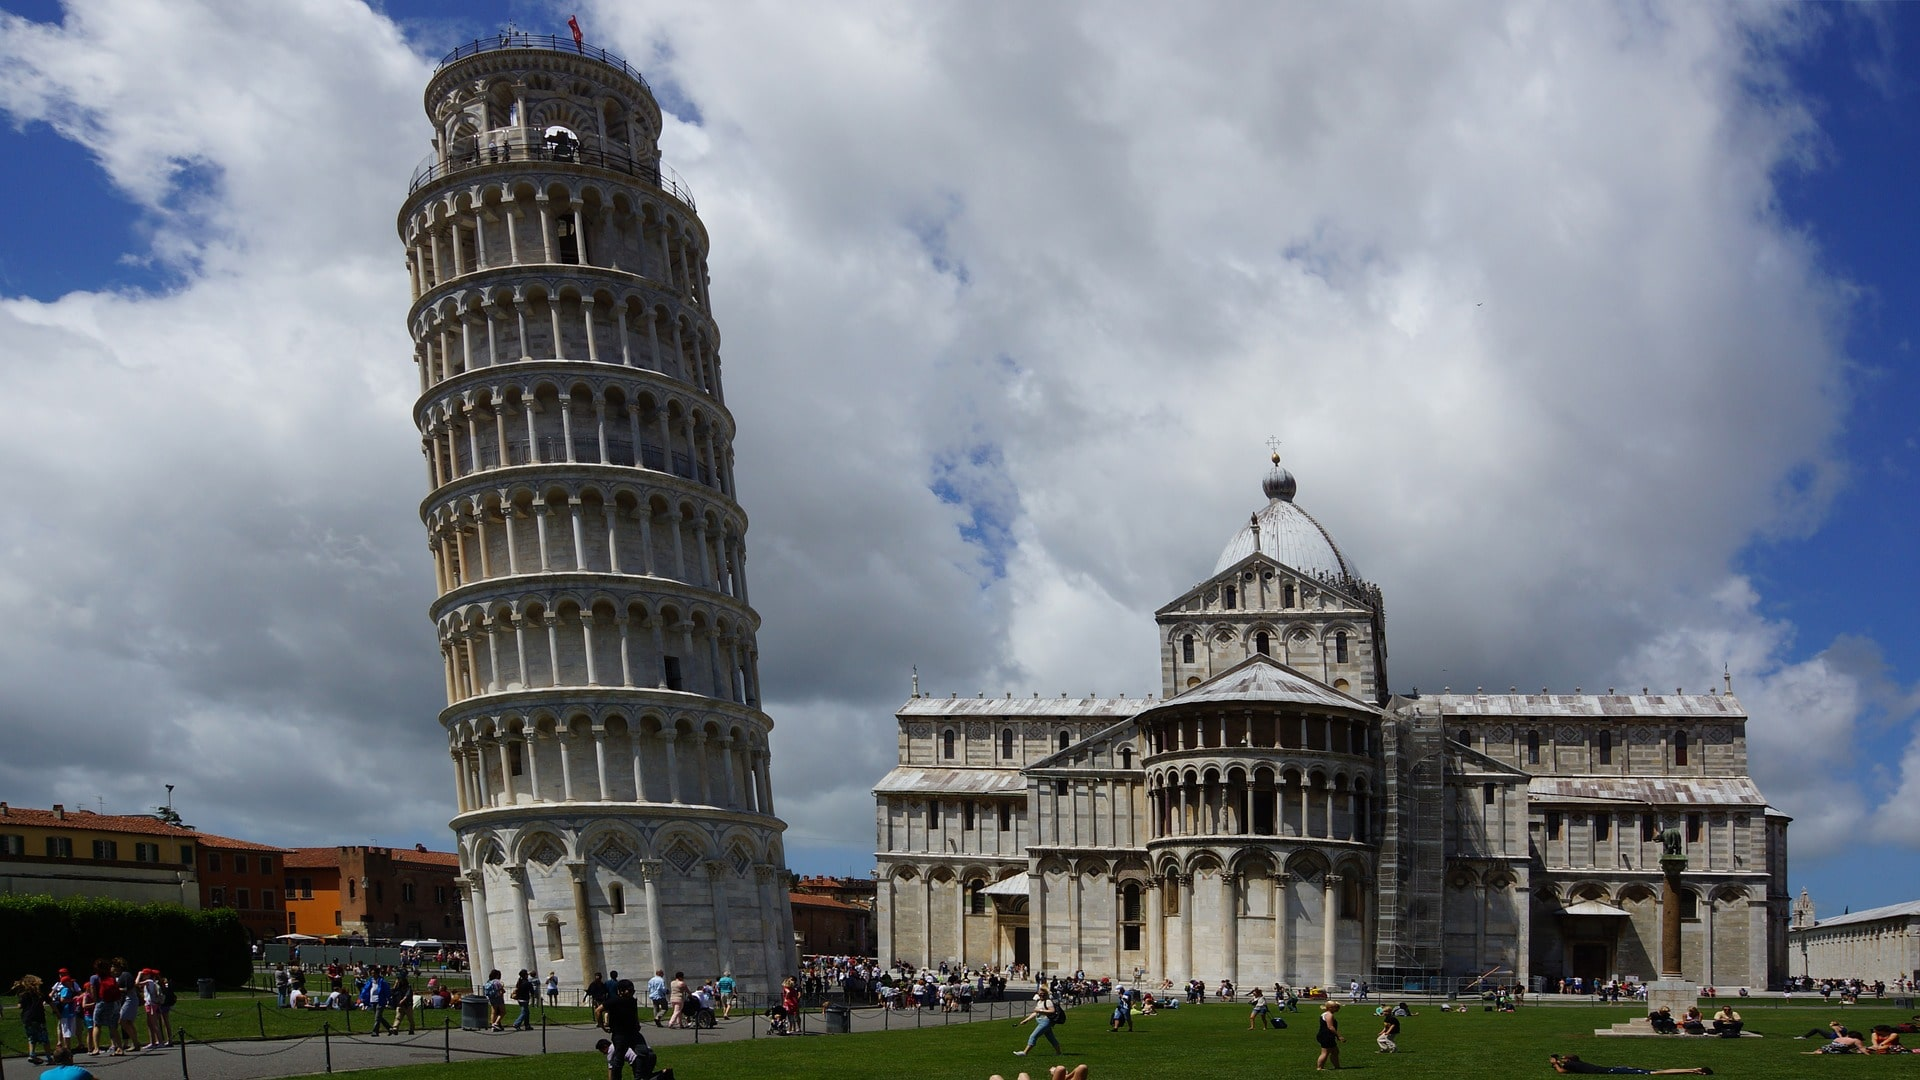 Taking a selfie at the Leaning Tower of Pisa is a fun thing to do in Italy